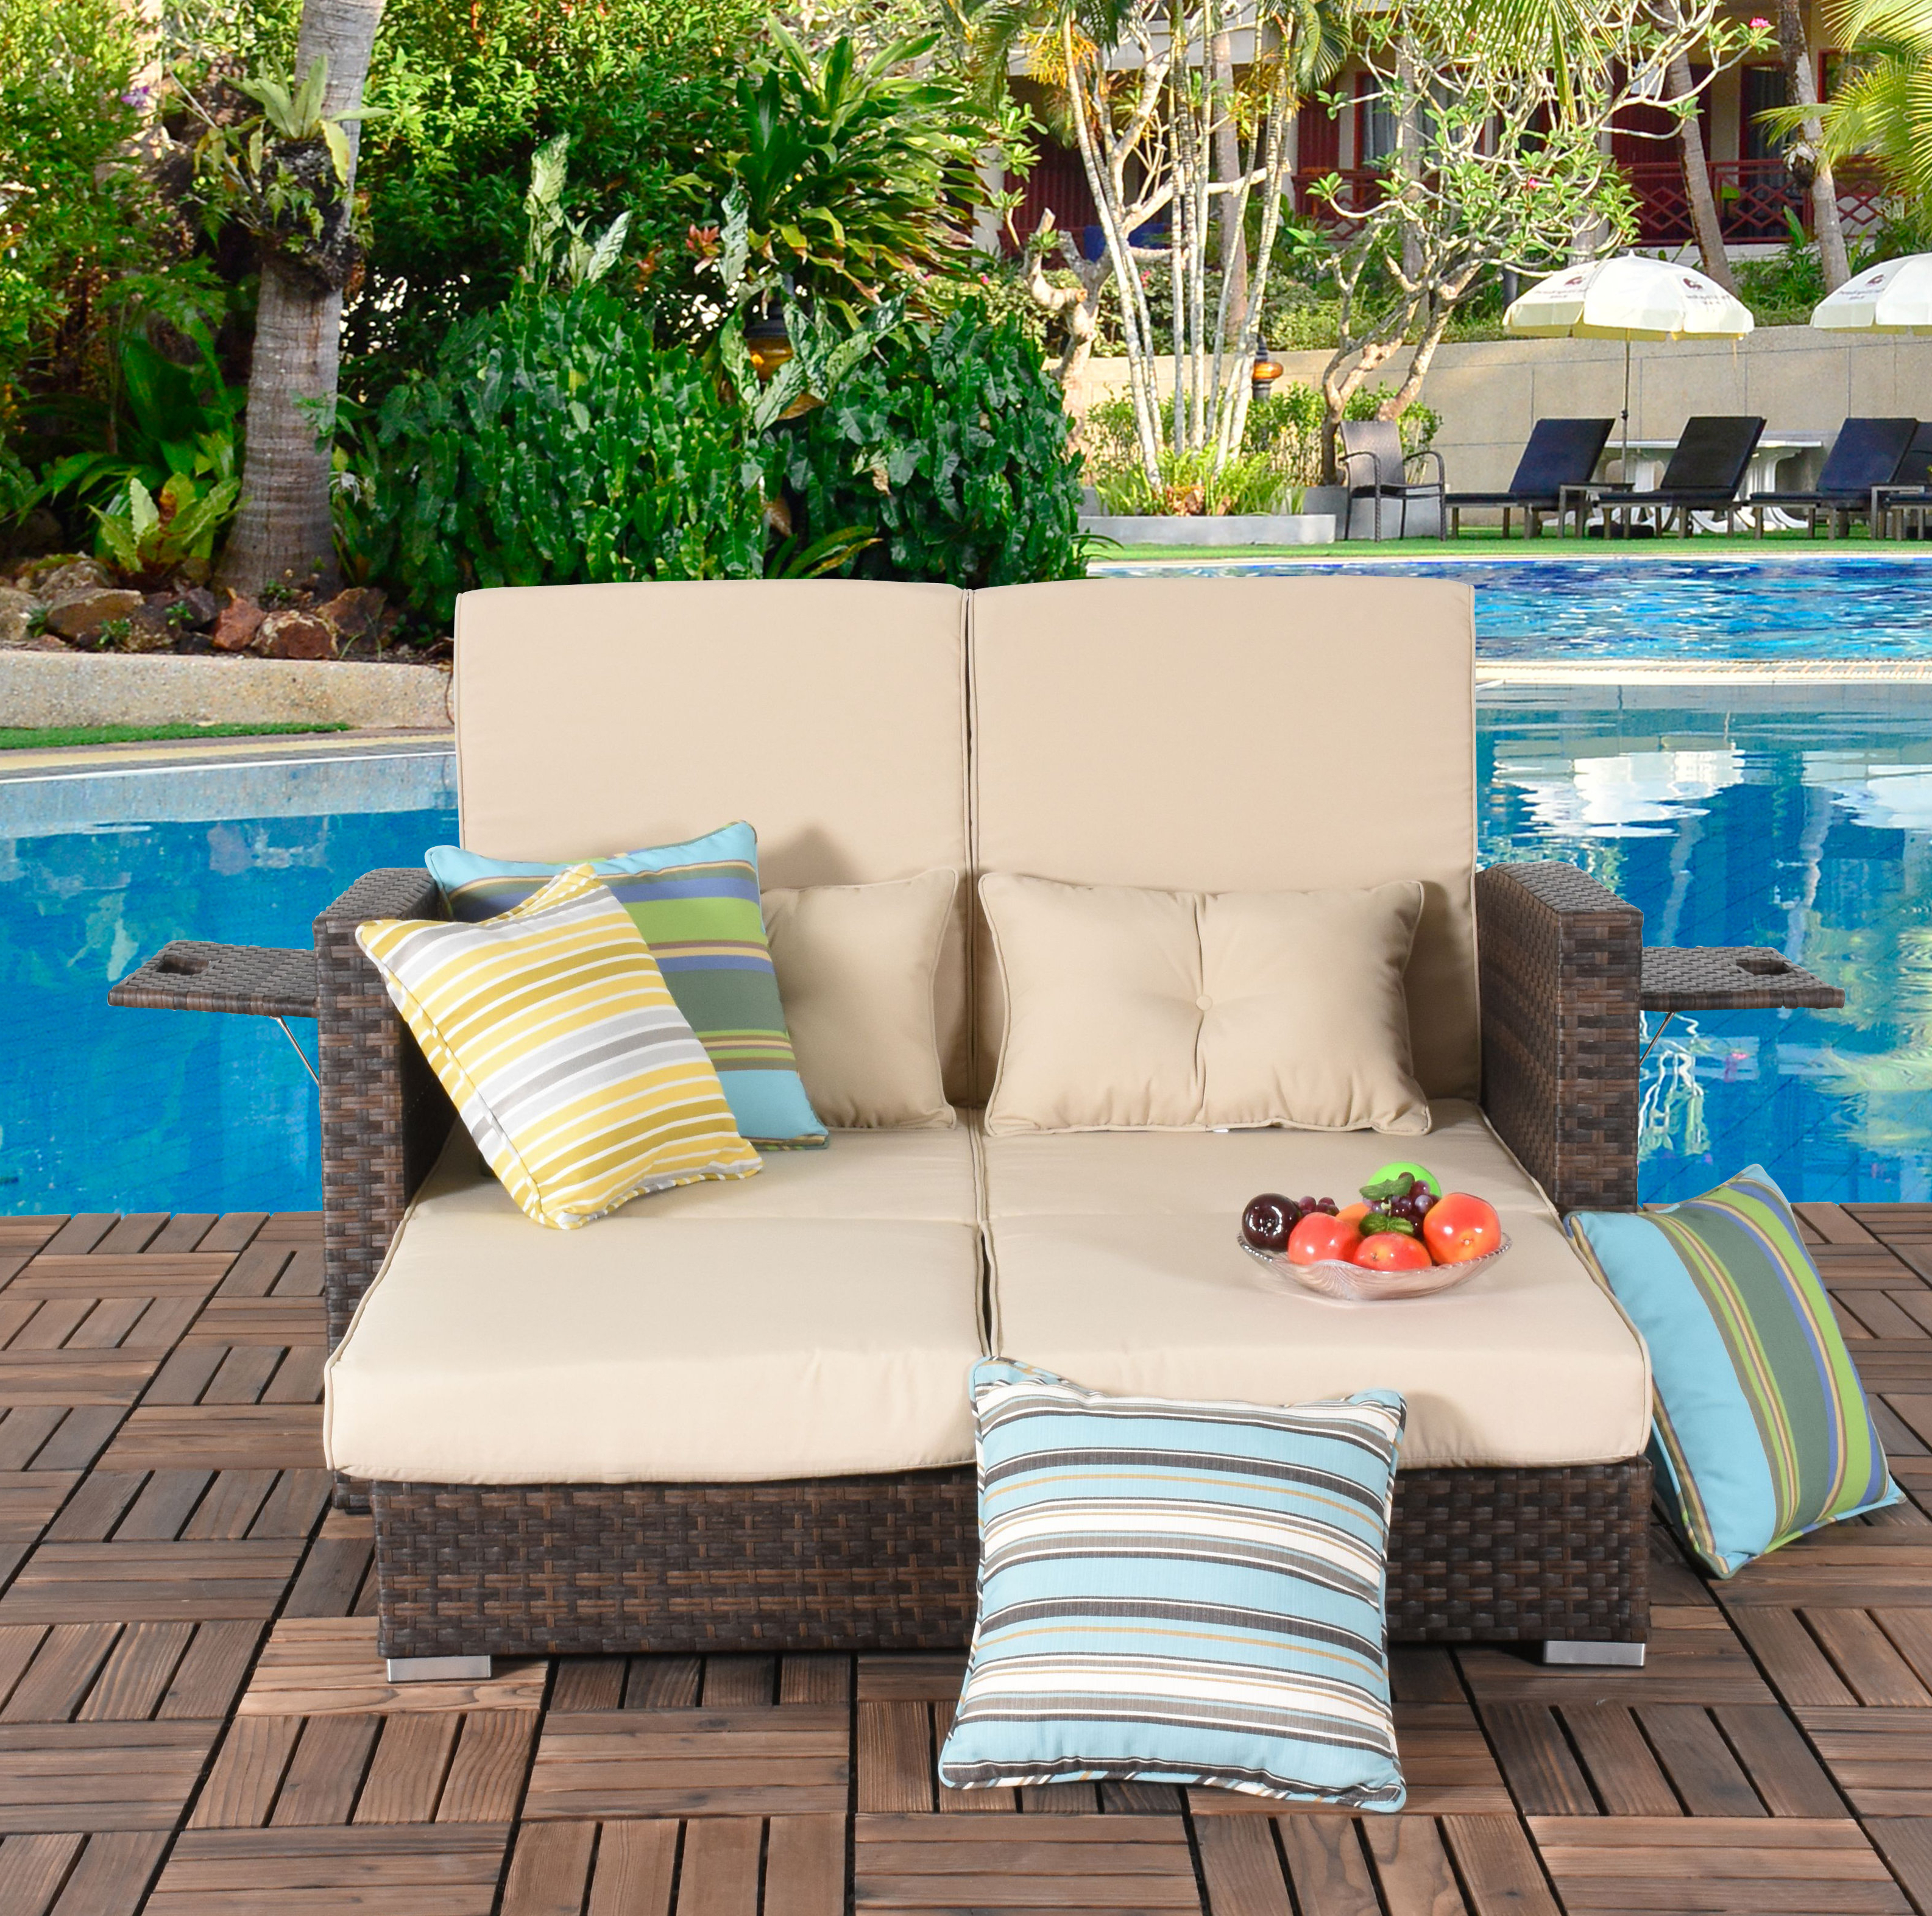 Widely Used Falmouth Patio Daybeds With Cushions With Regard To Cabrillo Patio Daybed With Cushions (View 8 of 20)